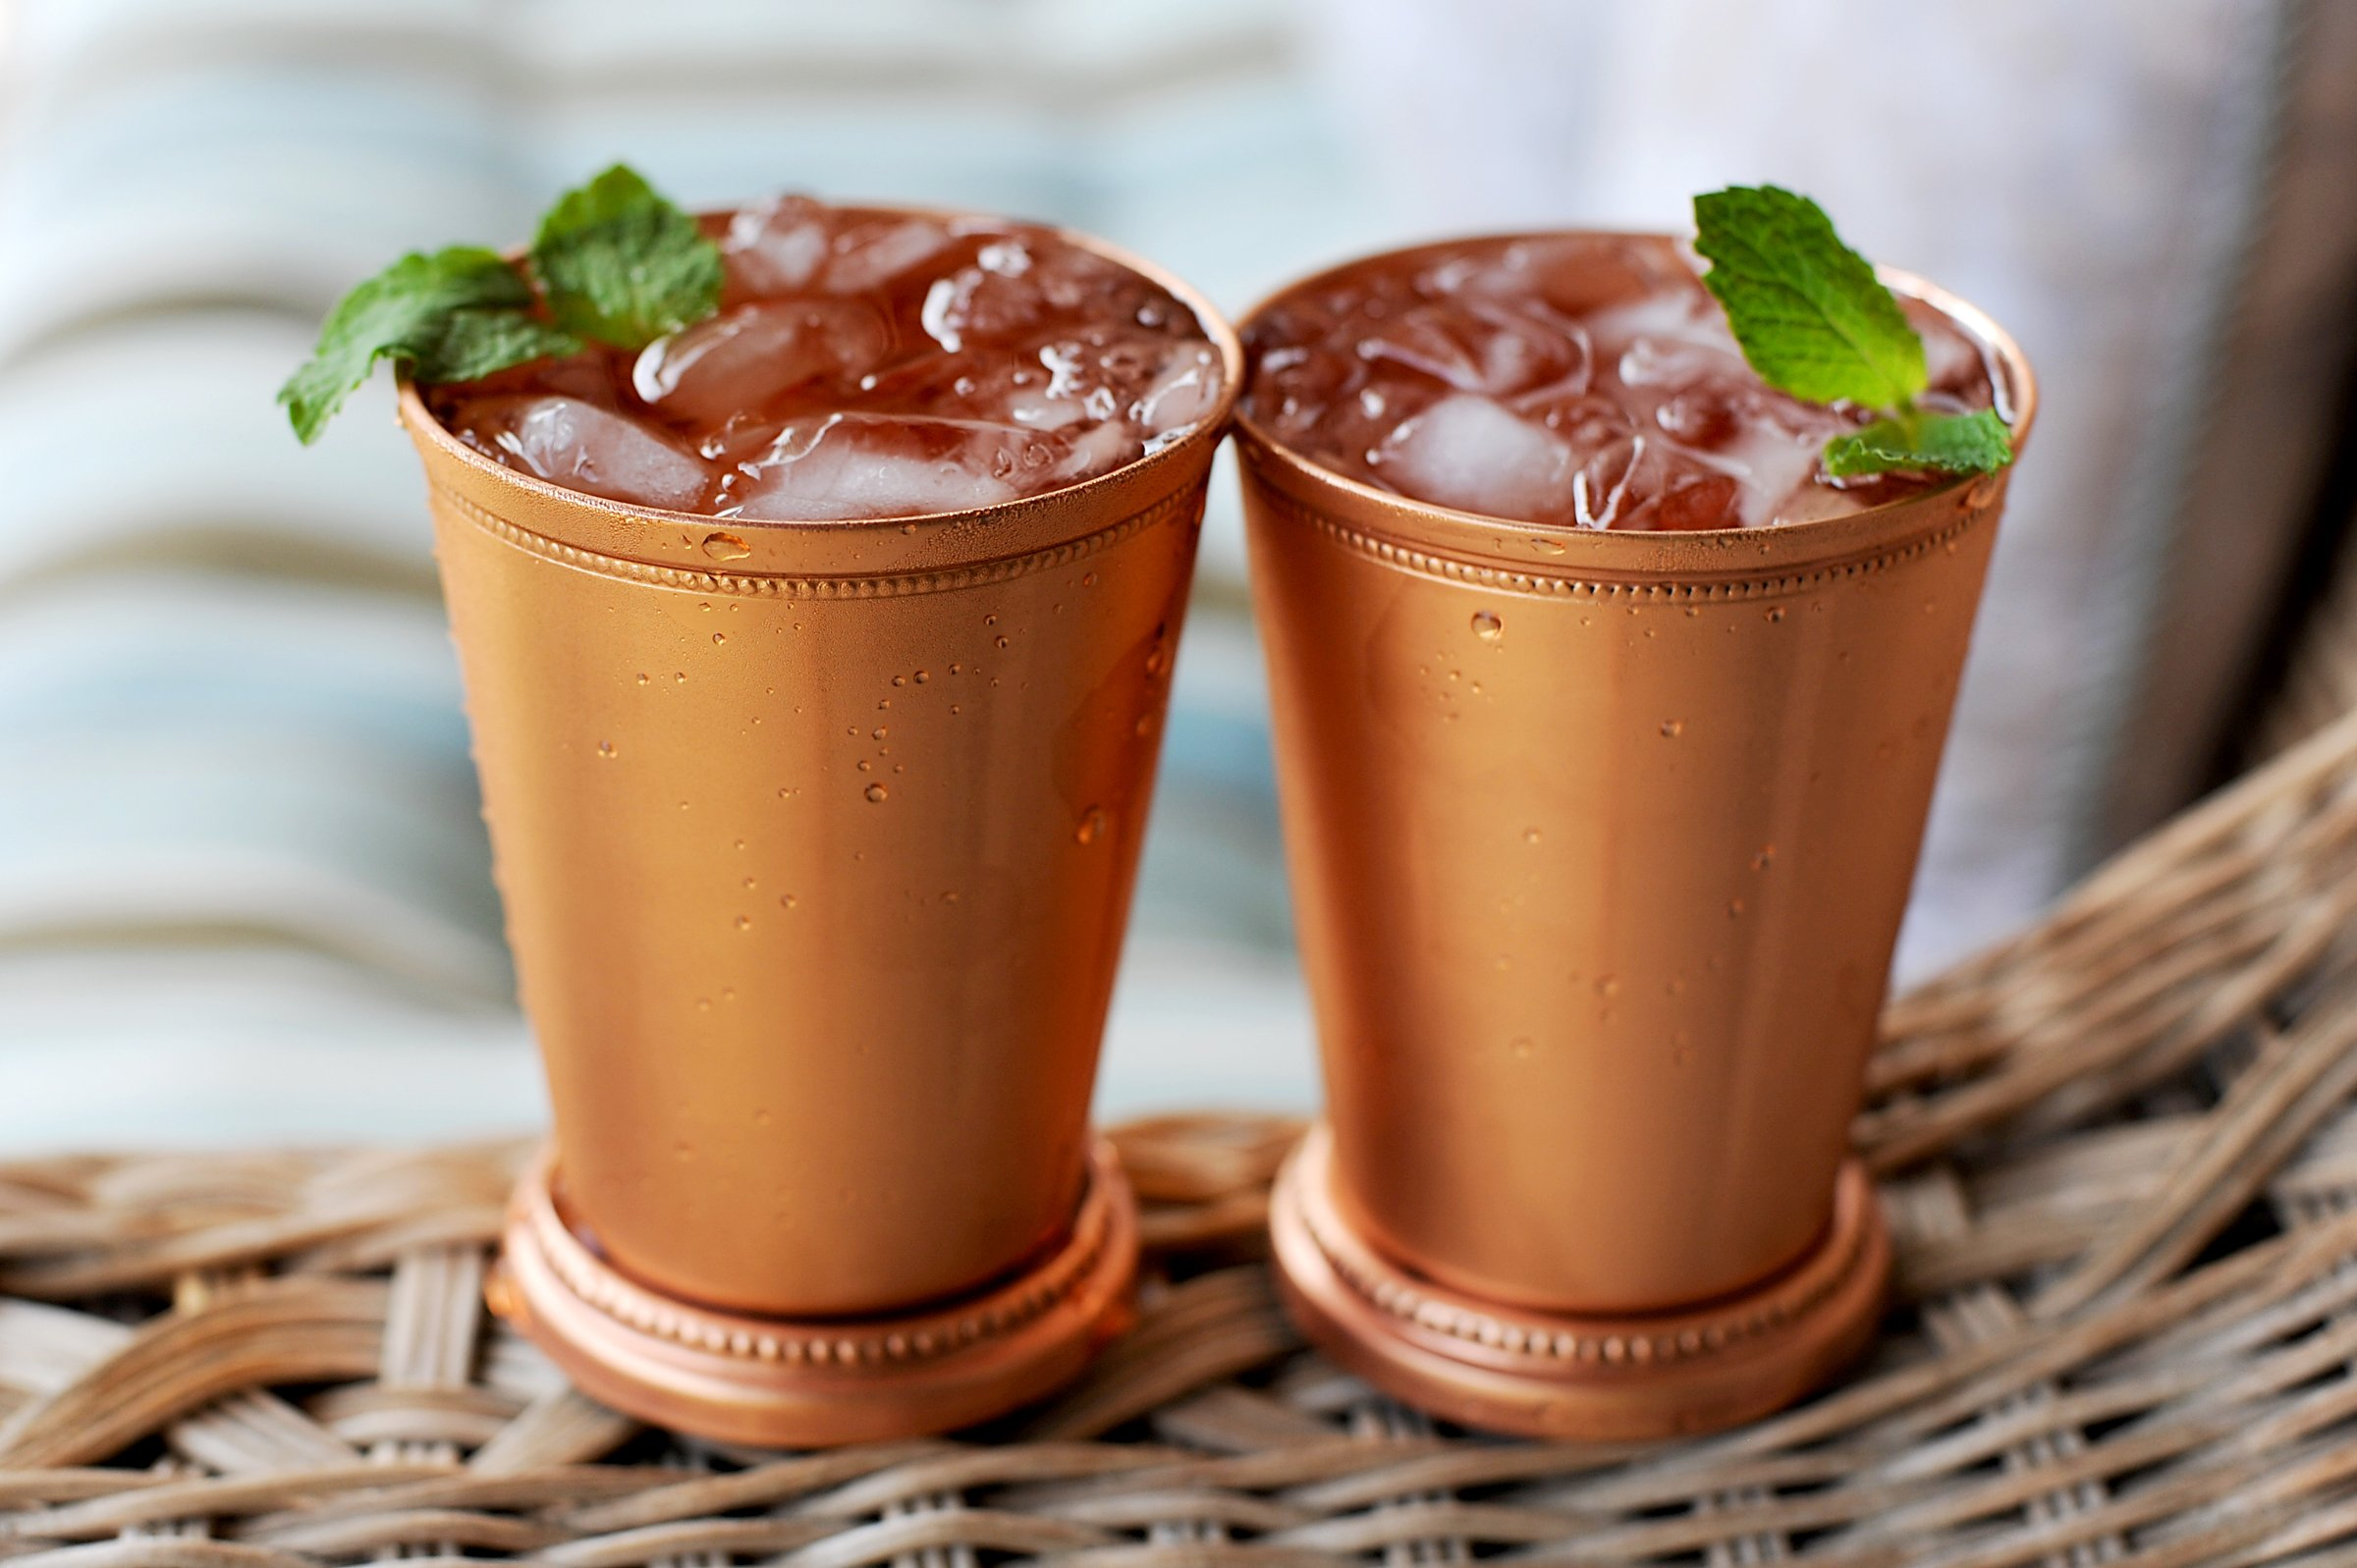 Moscow Mule Mint Julep Cup - 12 Oz, 100% Pure Copper Beautifully Beaded Trim Edging Mint Julep Cups Capacity 12 Ounce by Alchemade